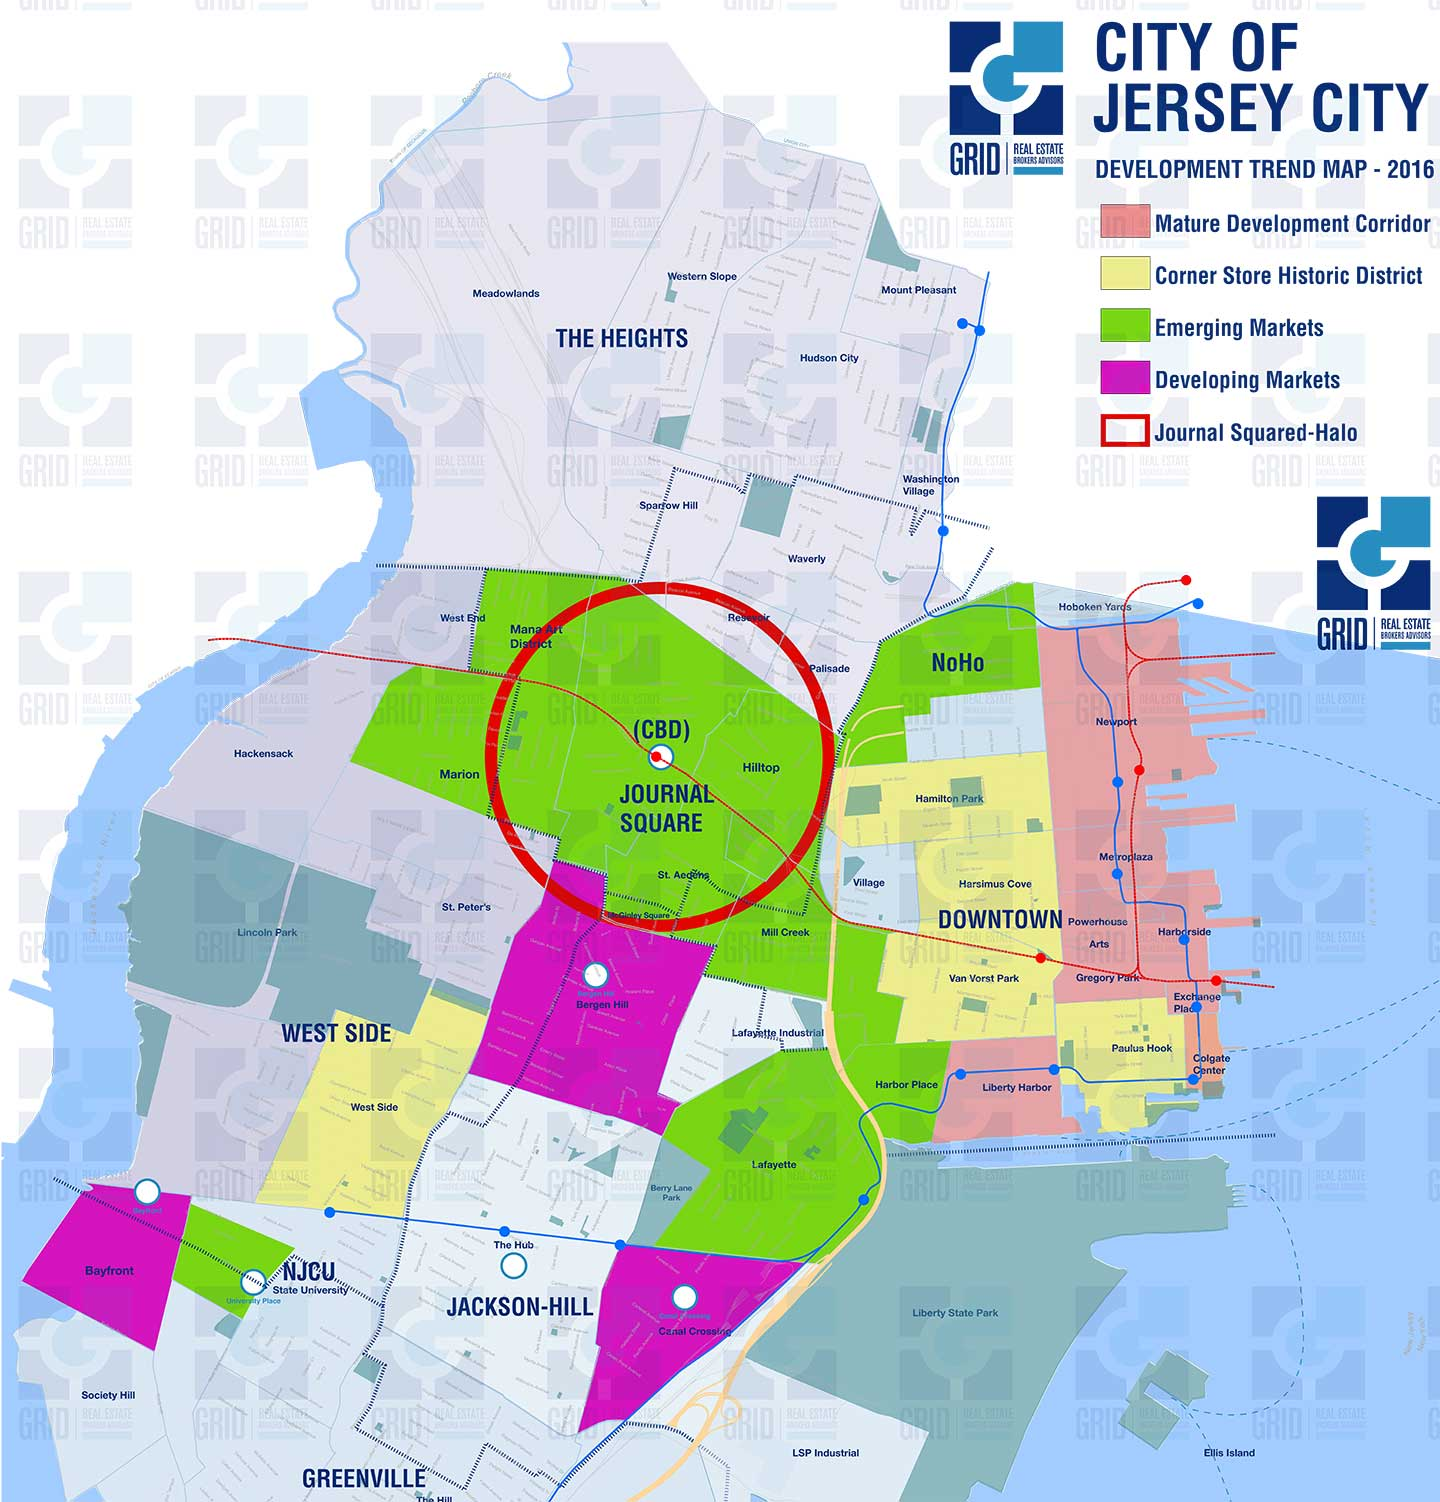 GRID Real Estate Releases Development Trend Map for Jersey City Jersey Digs